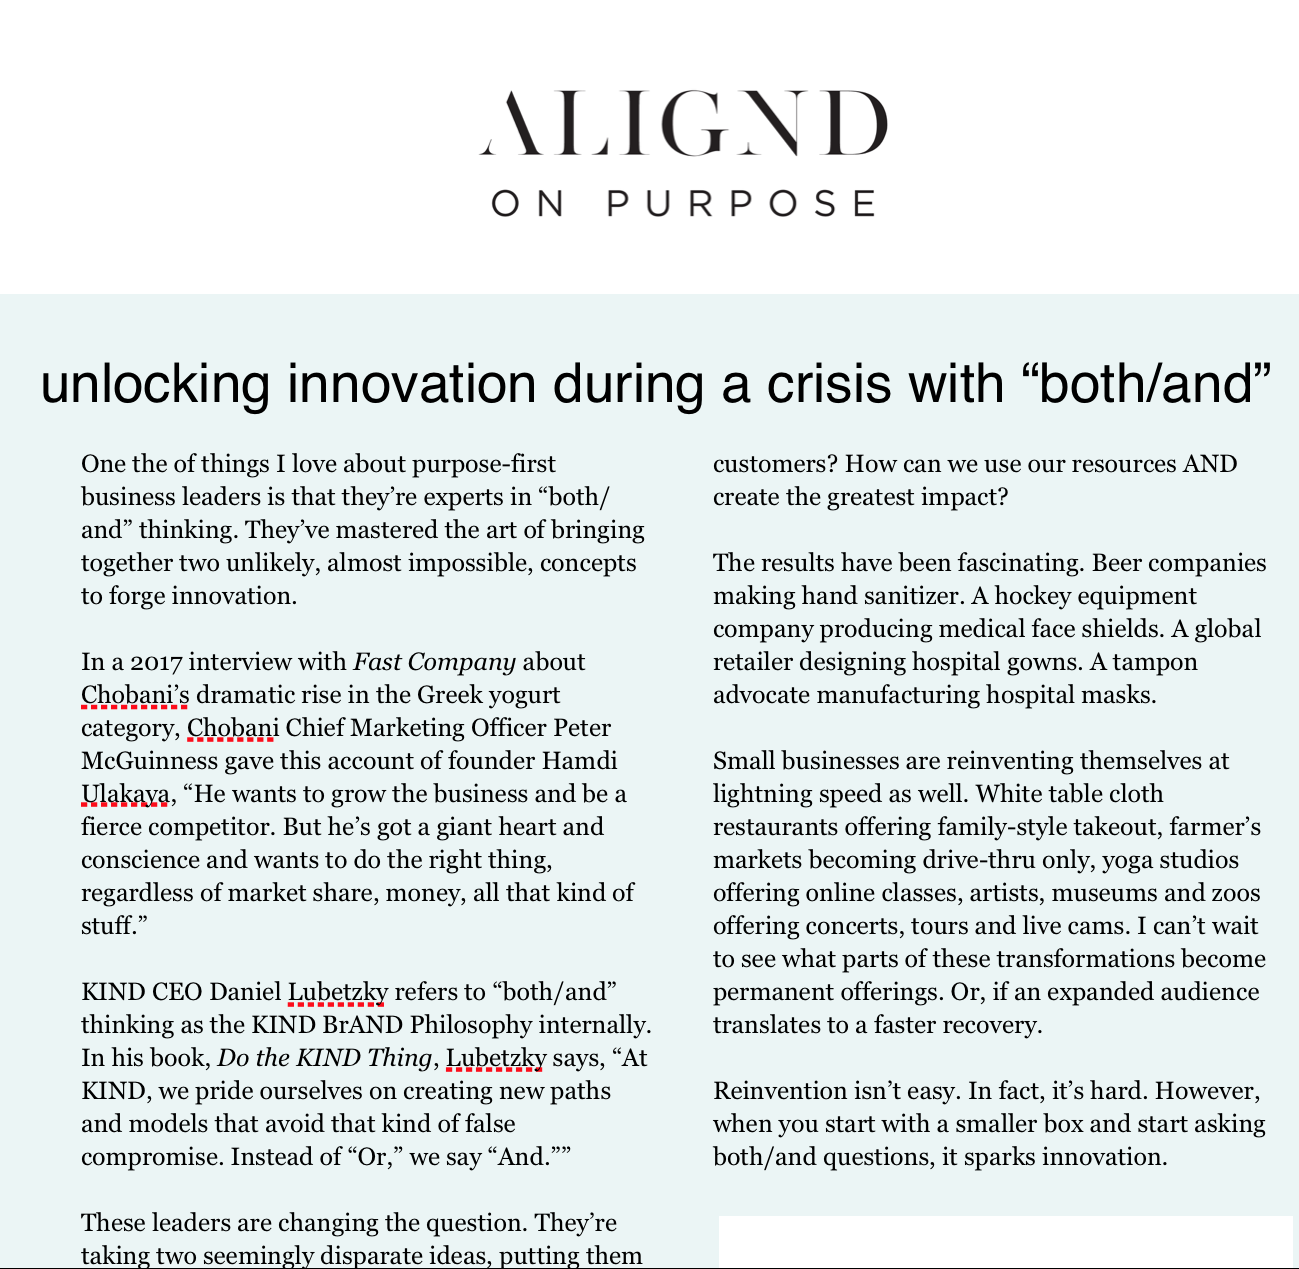 Unlocking-innovation-during-a-crisis